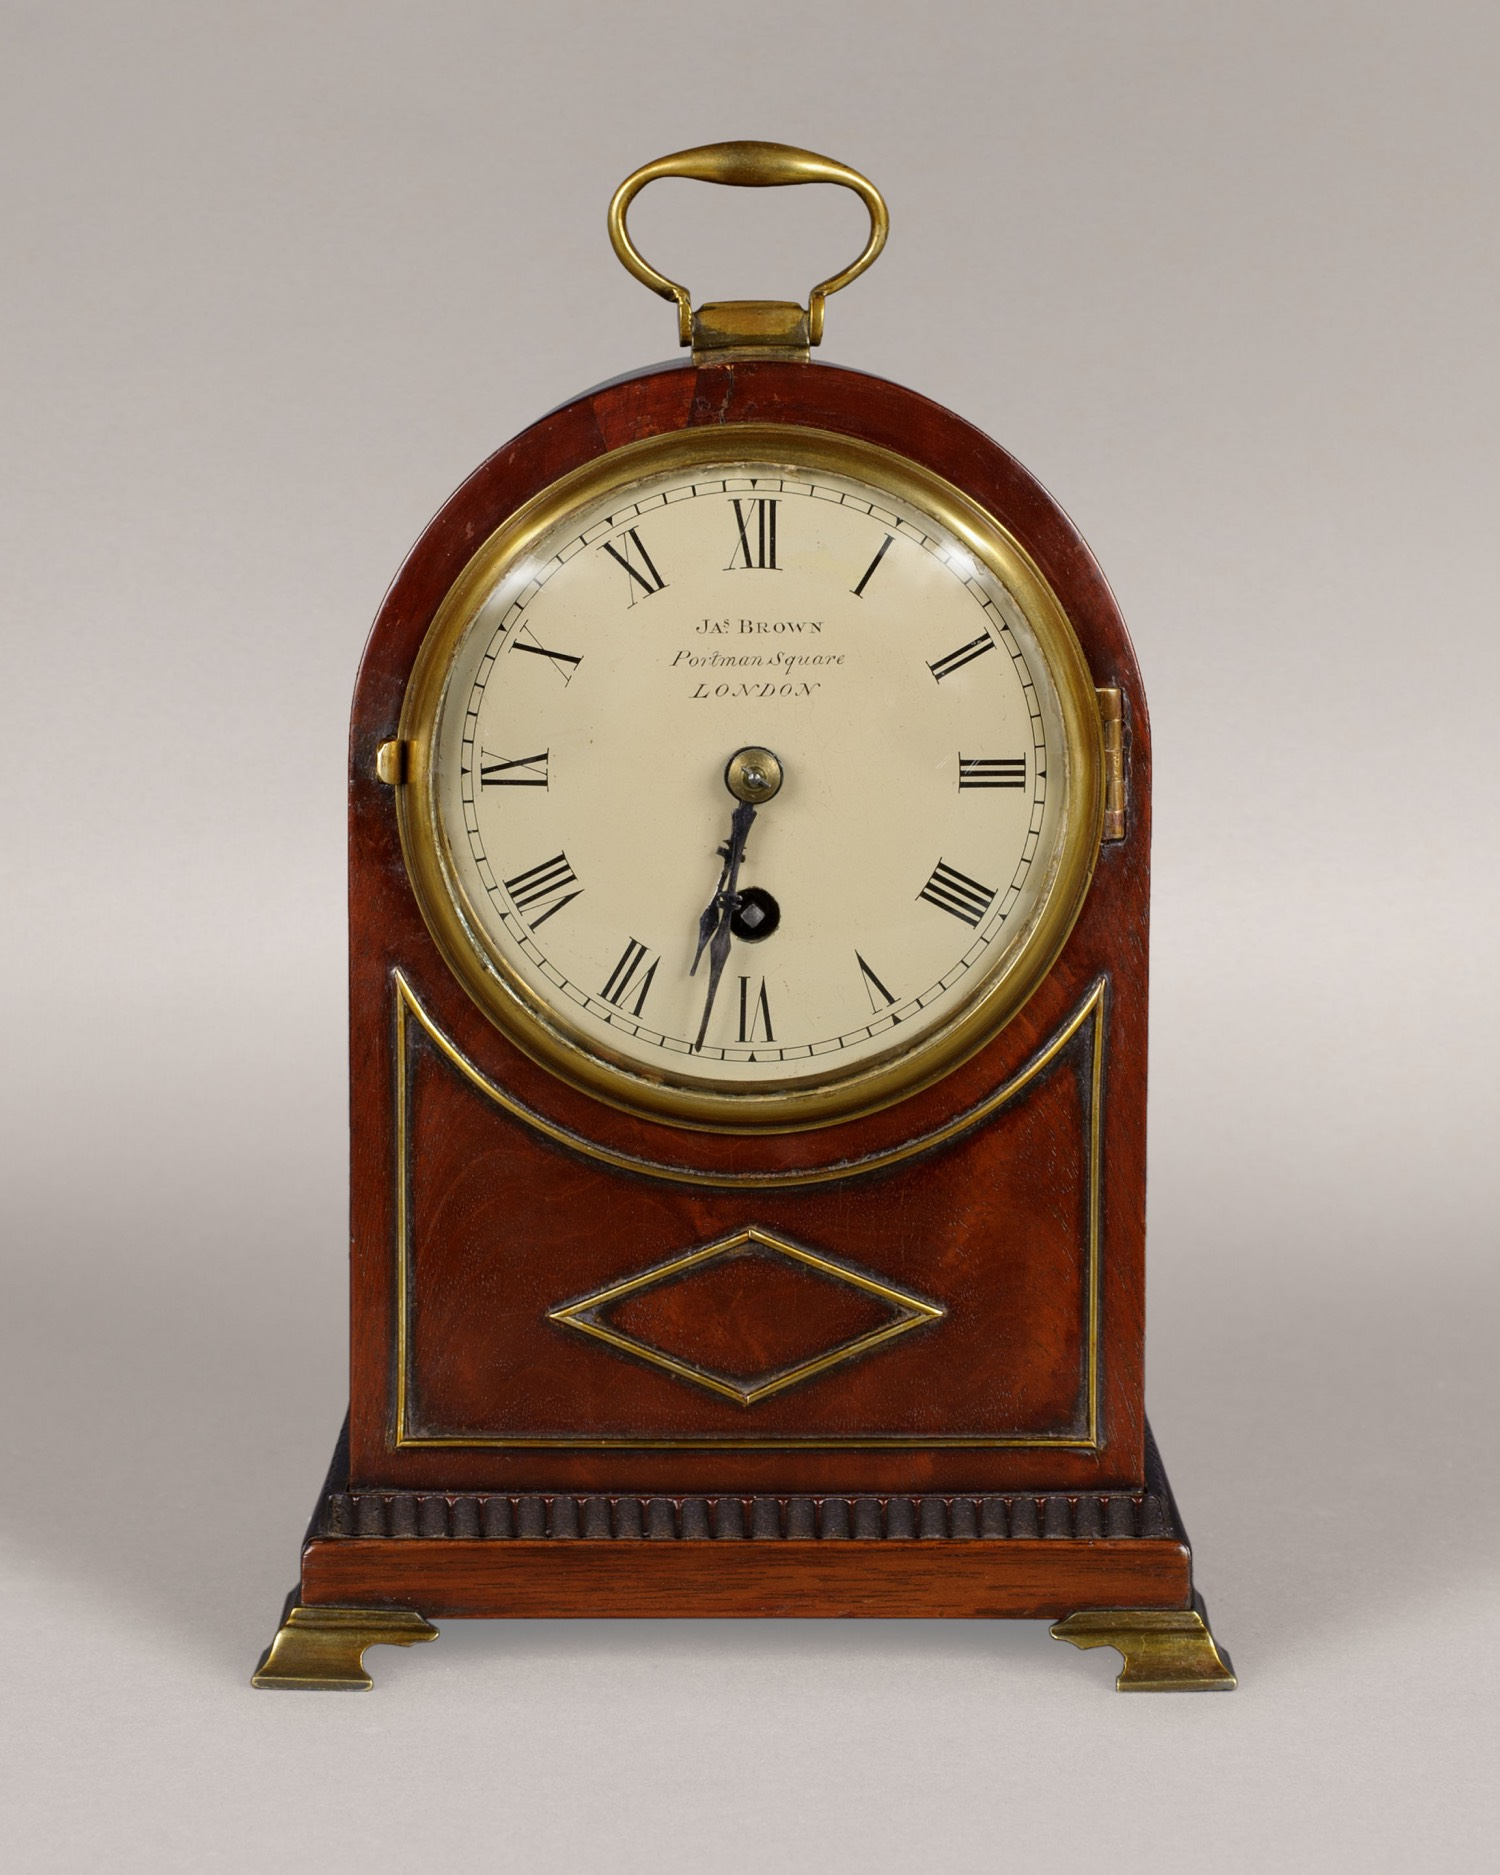 JAMES BROWN. A GOOD 19TH CENTURY MAHOGANY TIMEPIECE MANTEL CLOCK.